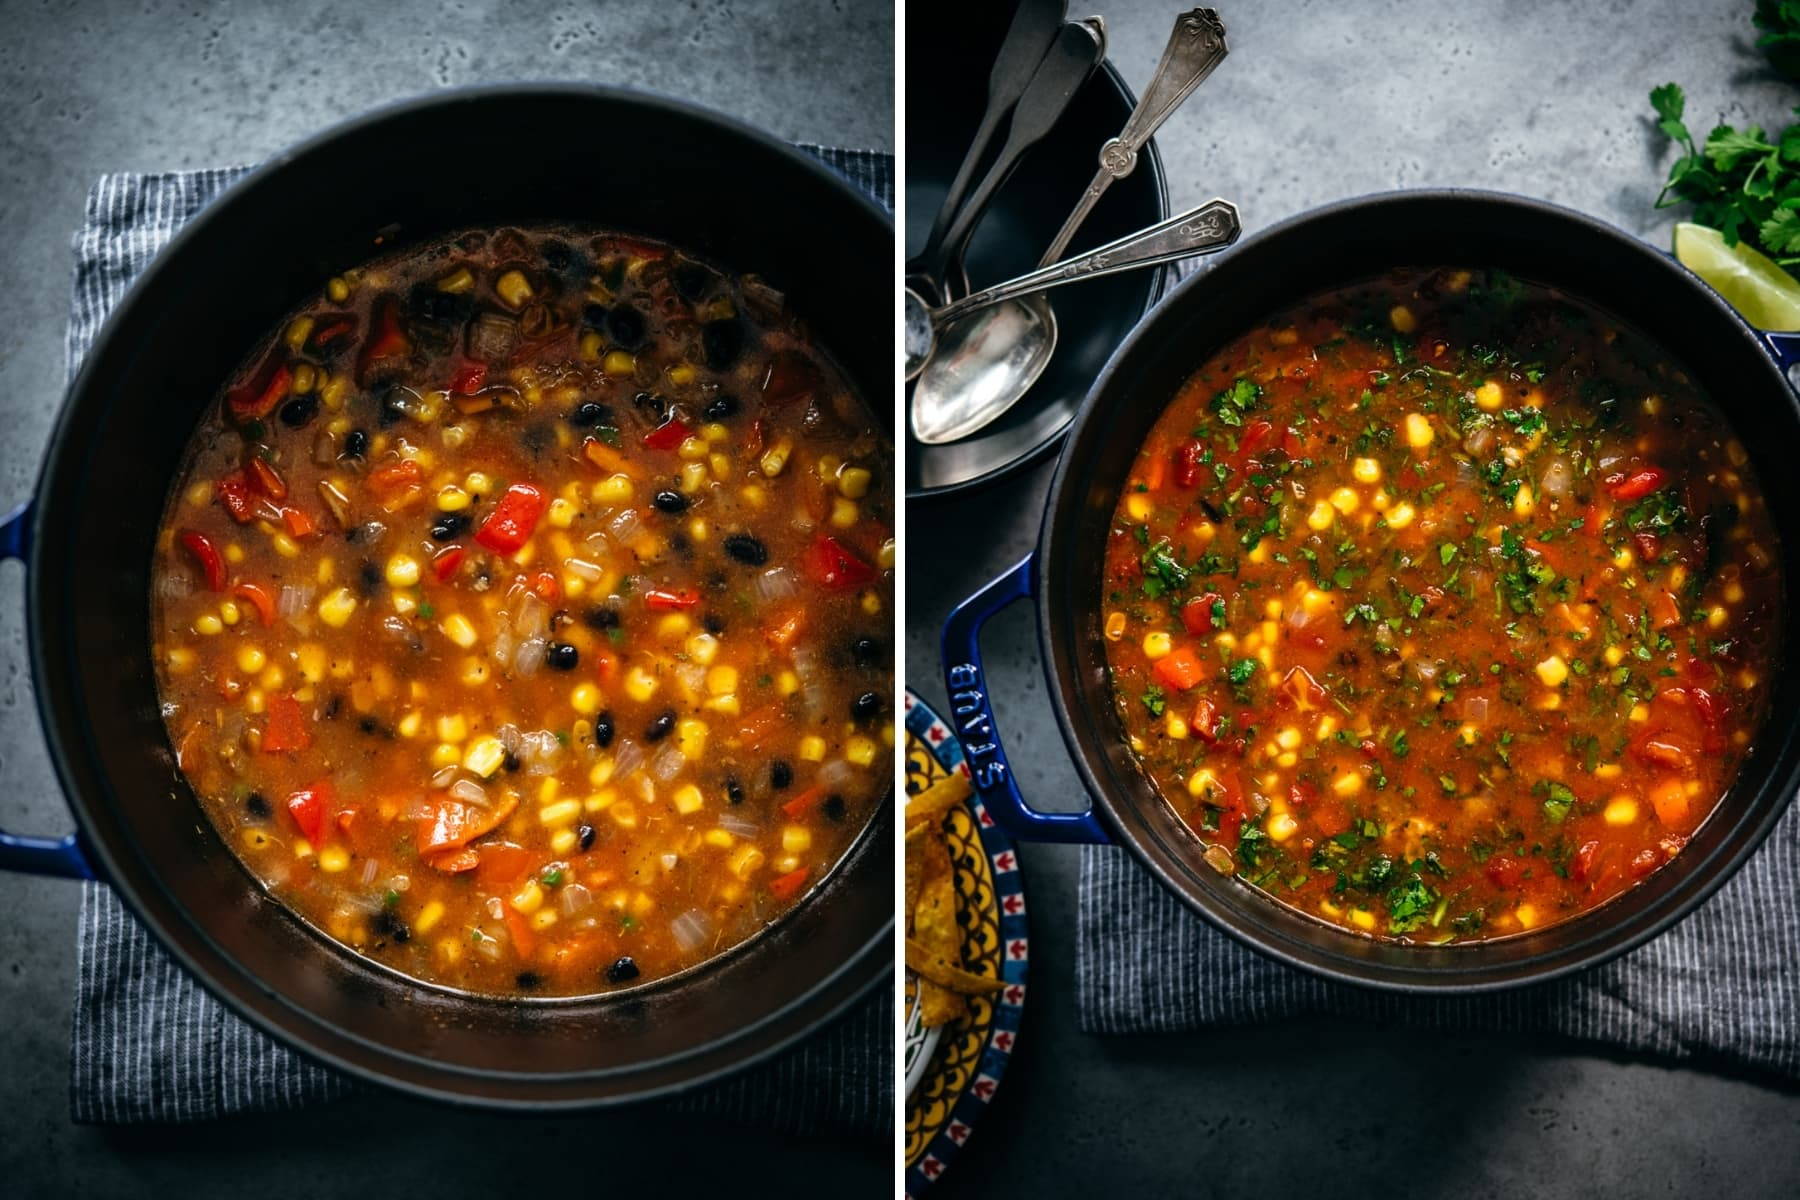 before and after vegan tortilla soup has been cooked in large pot.